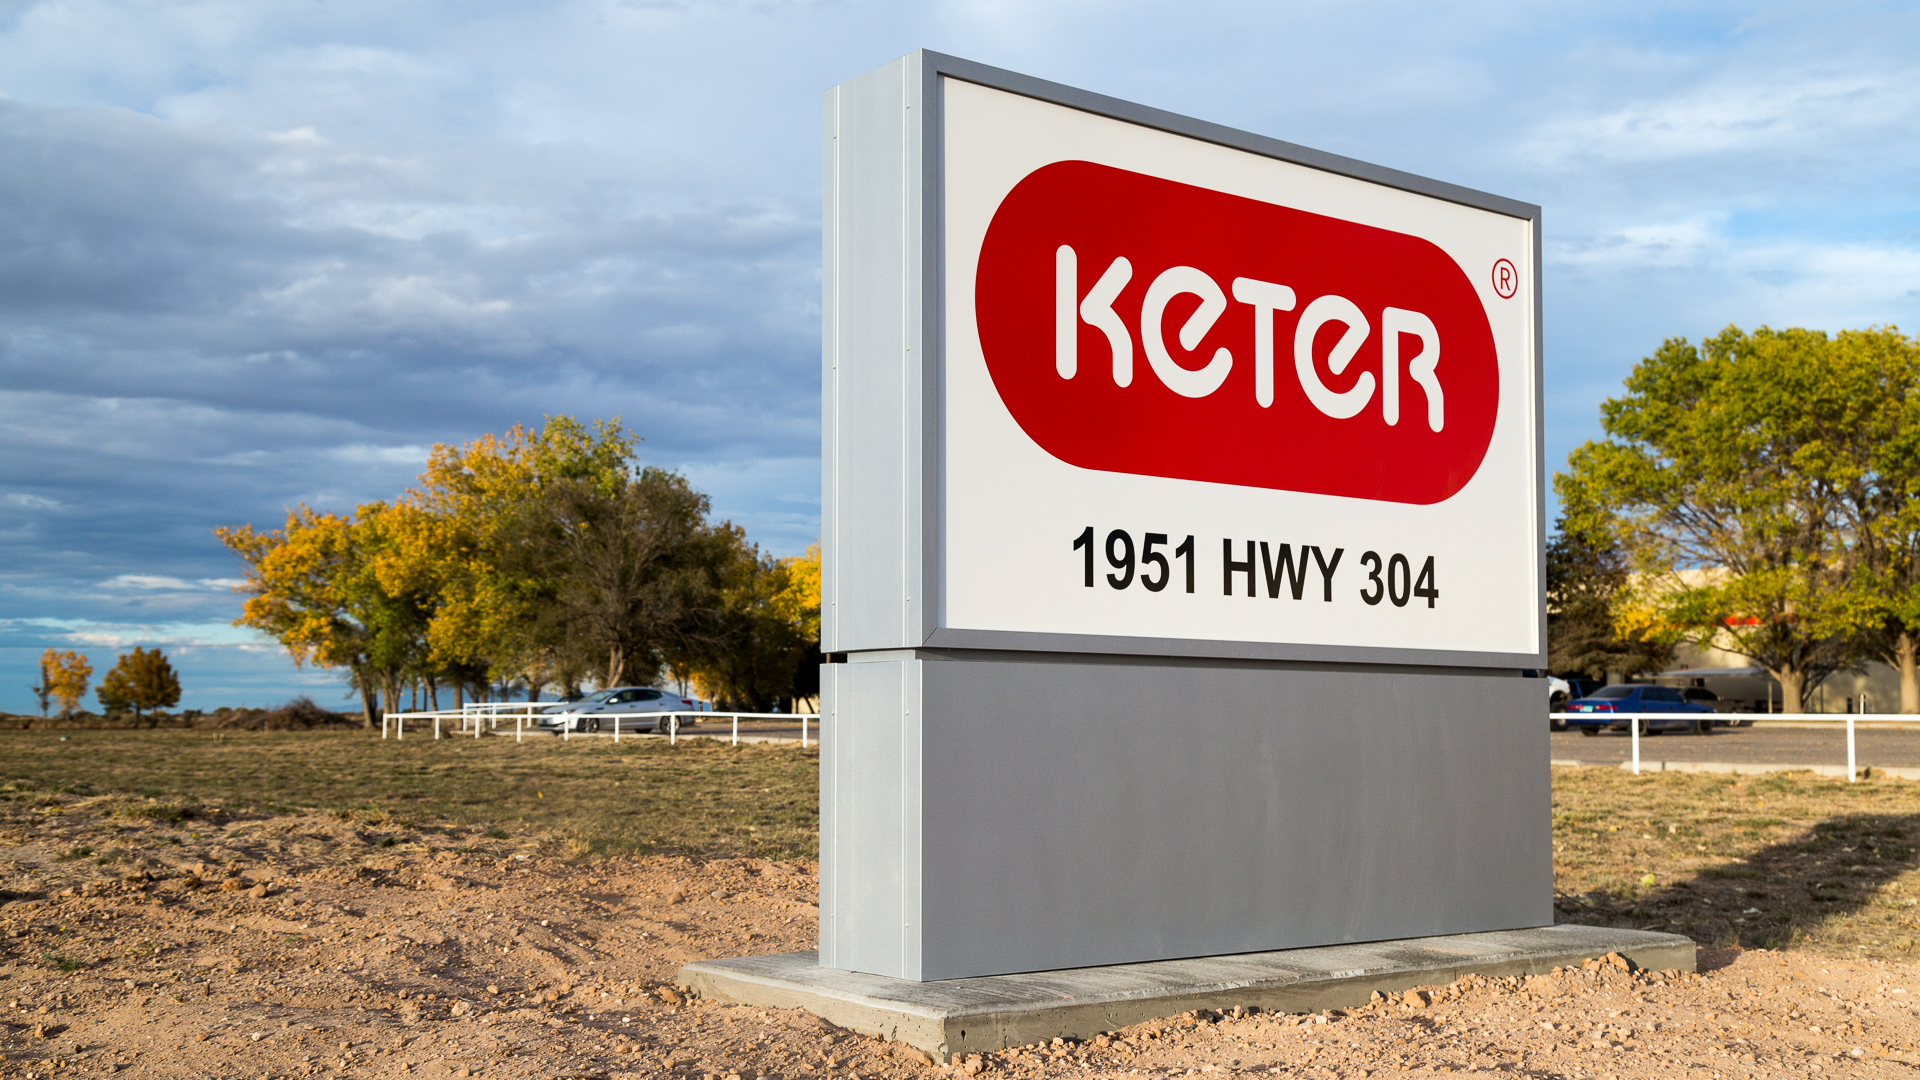 Keter-6188-2